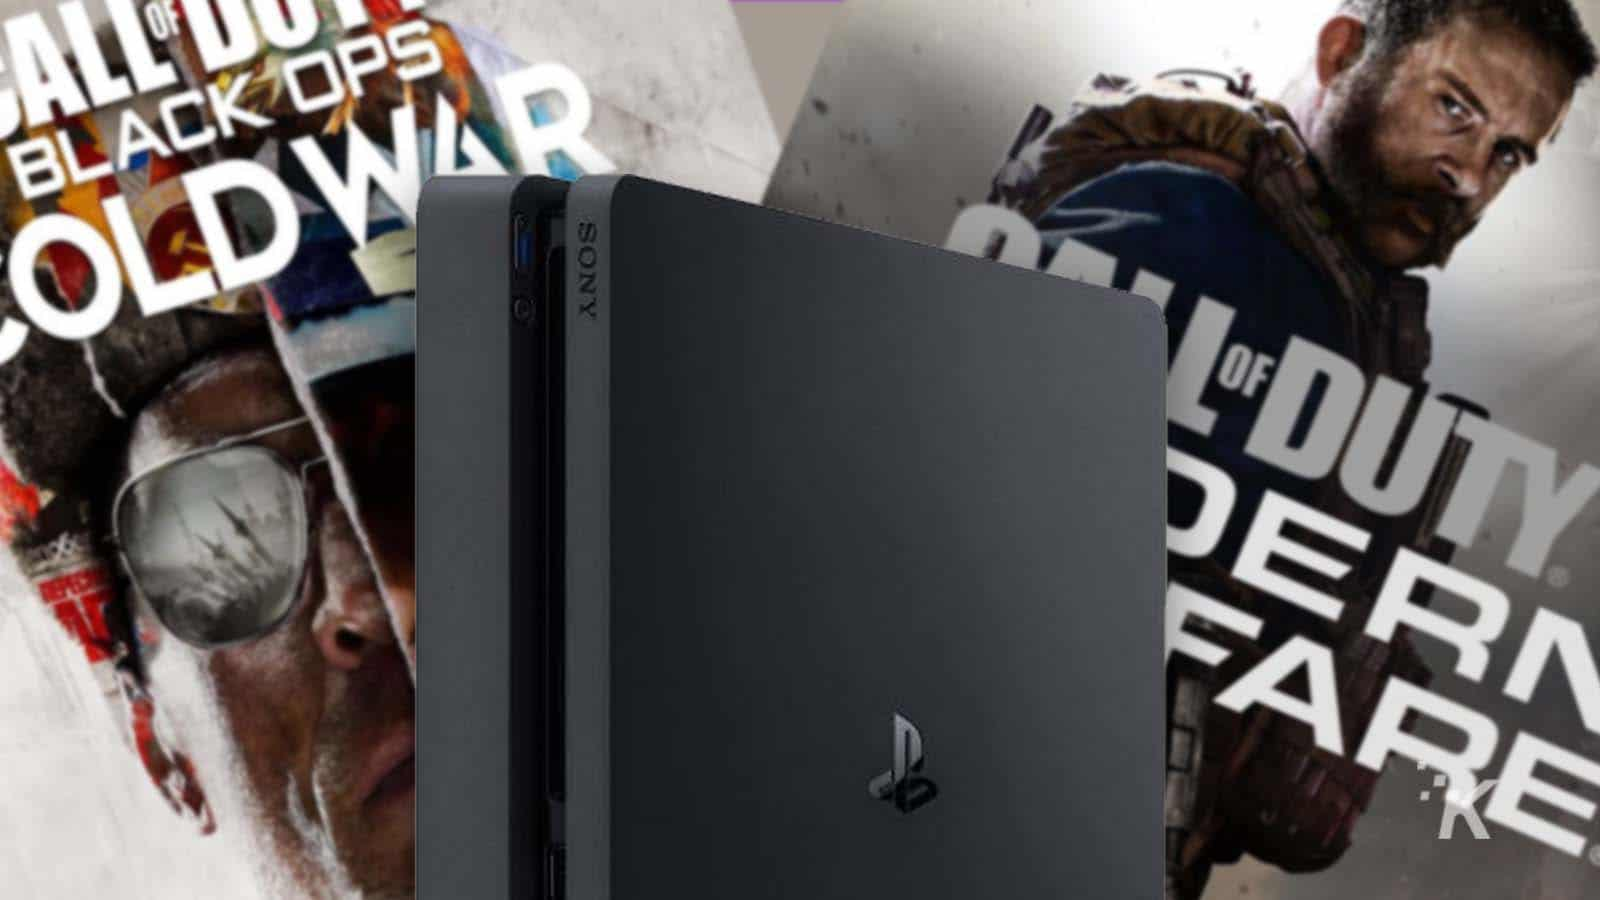 playstation 4 console with call of duty titles behind it